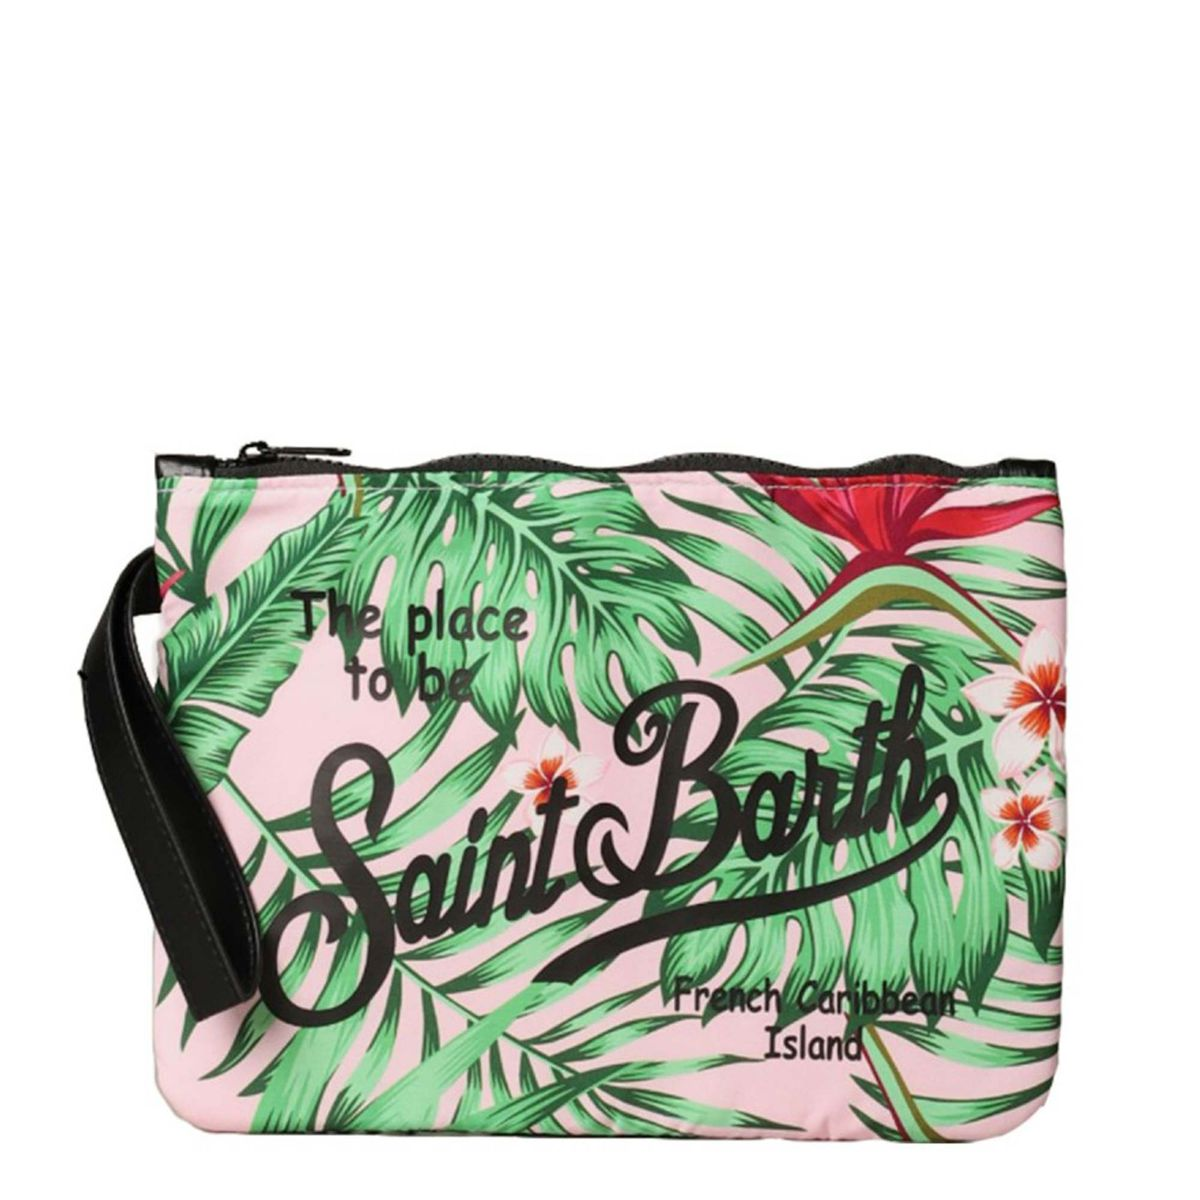 Parisienne patterned clutch bag with contrasting logo Pink / green MC2 Saint Barth